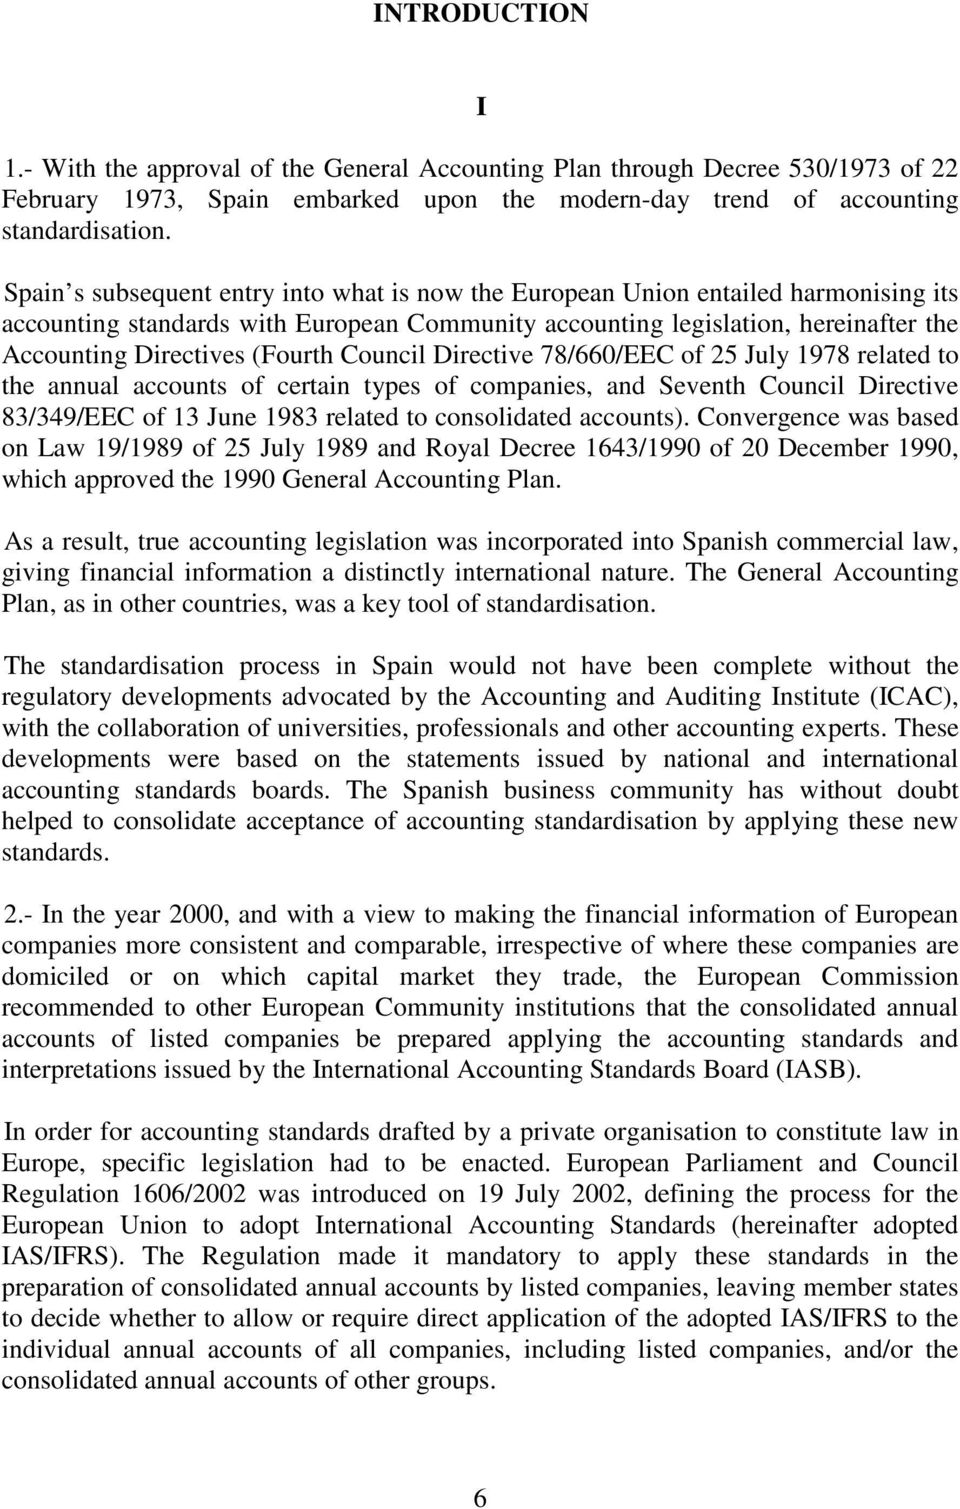 (Fourth Council Directive 78/660/EEC of 25 July 1978 related to the annual accounts of certain types of companies, and Seventh Council Directive 83/349/EEC of 13 June 1983 related to consolidated